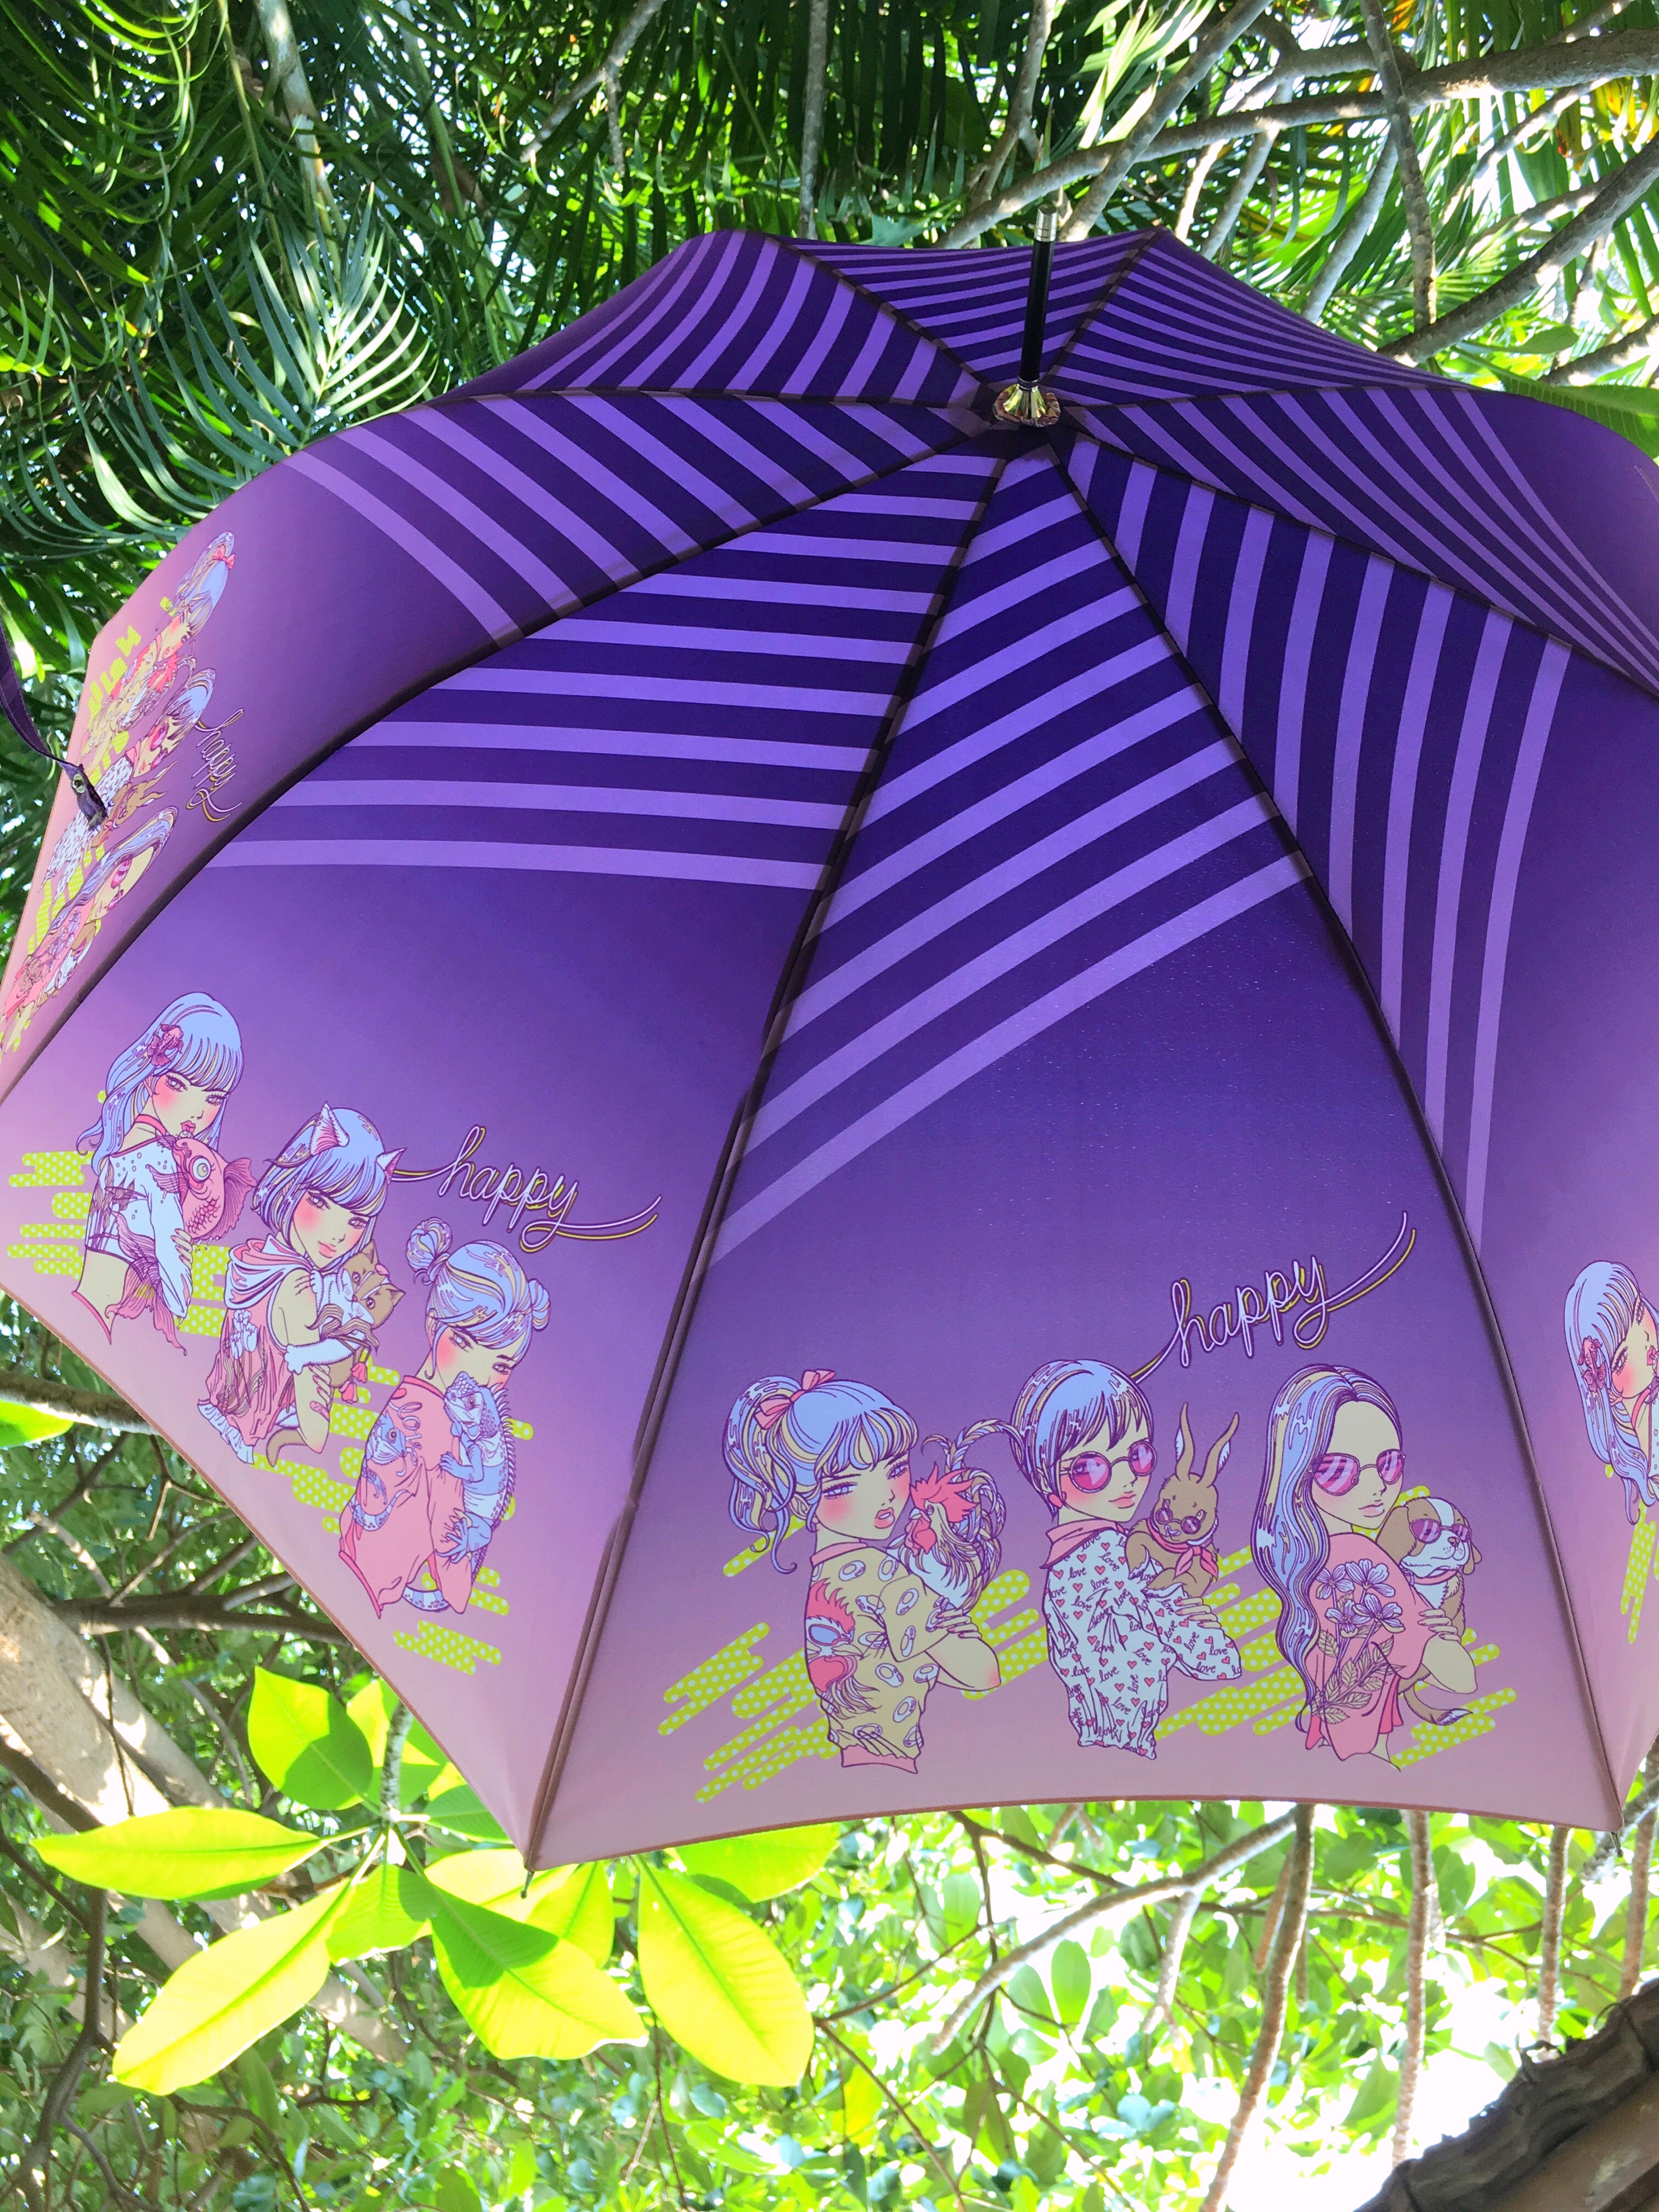 Pet Mania Umbrella